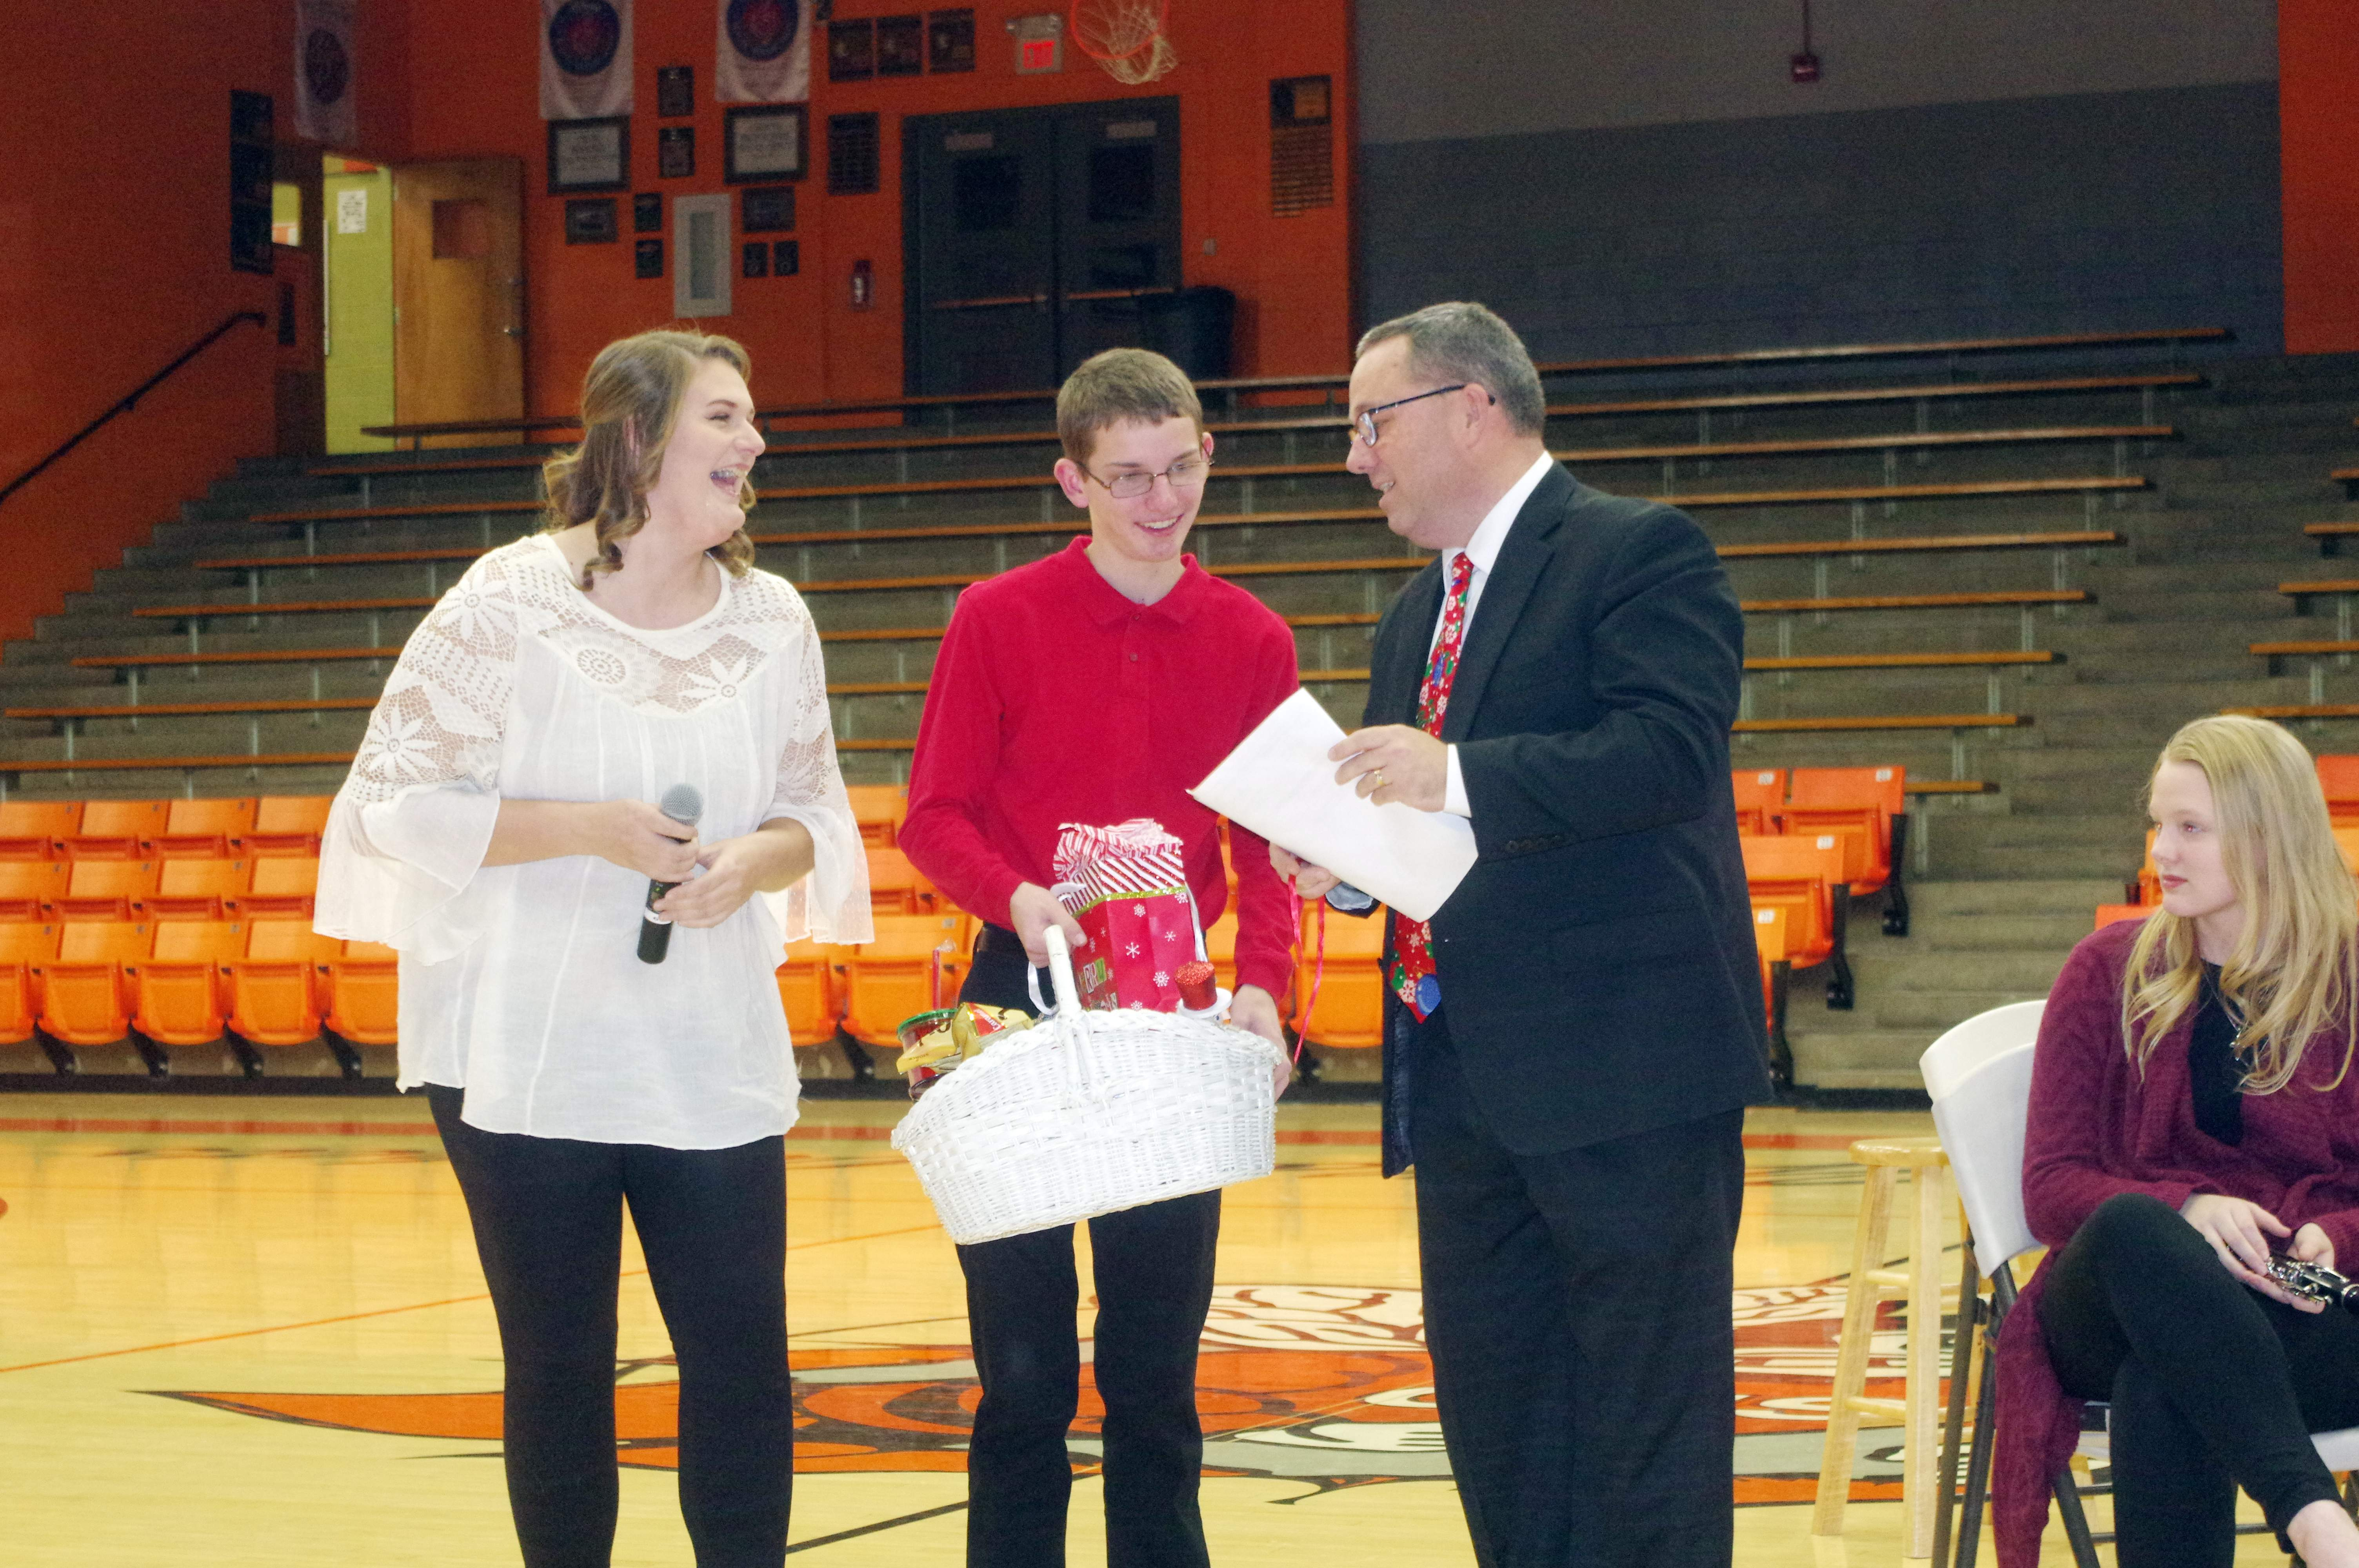 Chester High School senior music students Montana Rose (left) and Mitchell Colonel present CHS Music Director Steve Colonel with a gift basket.